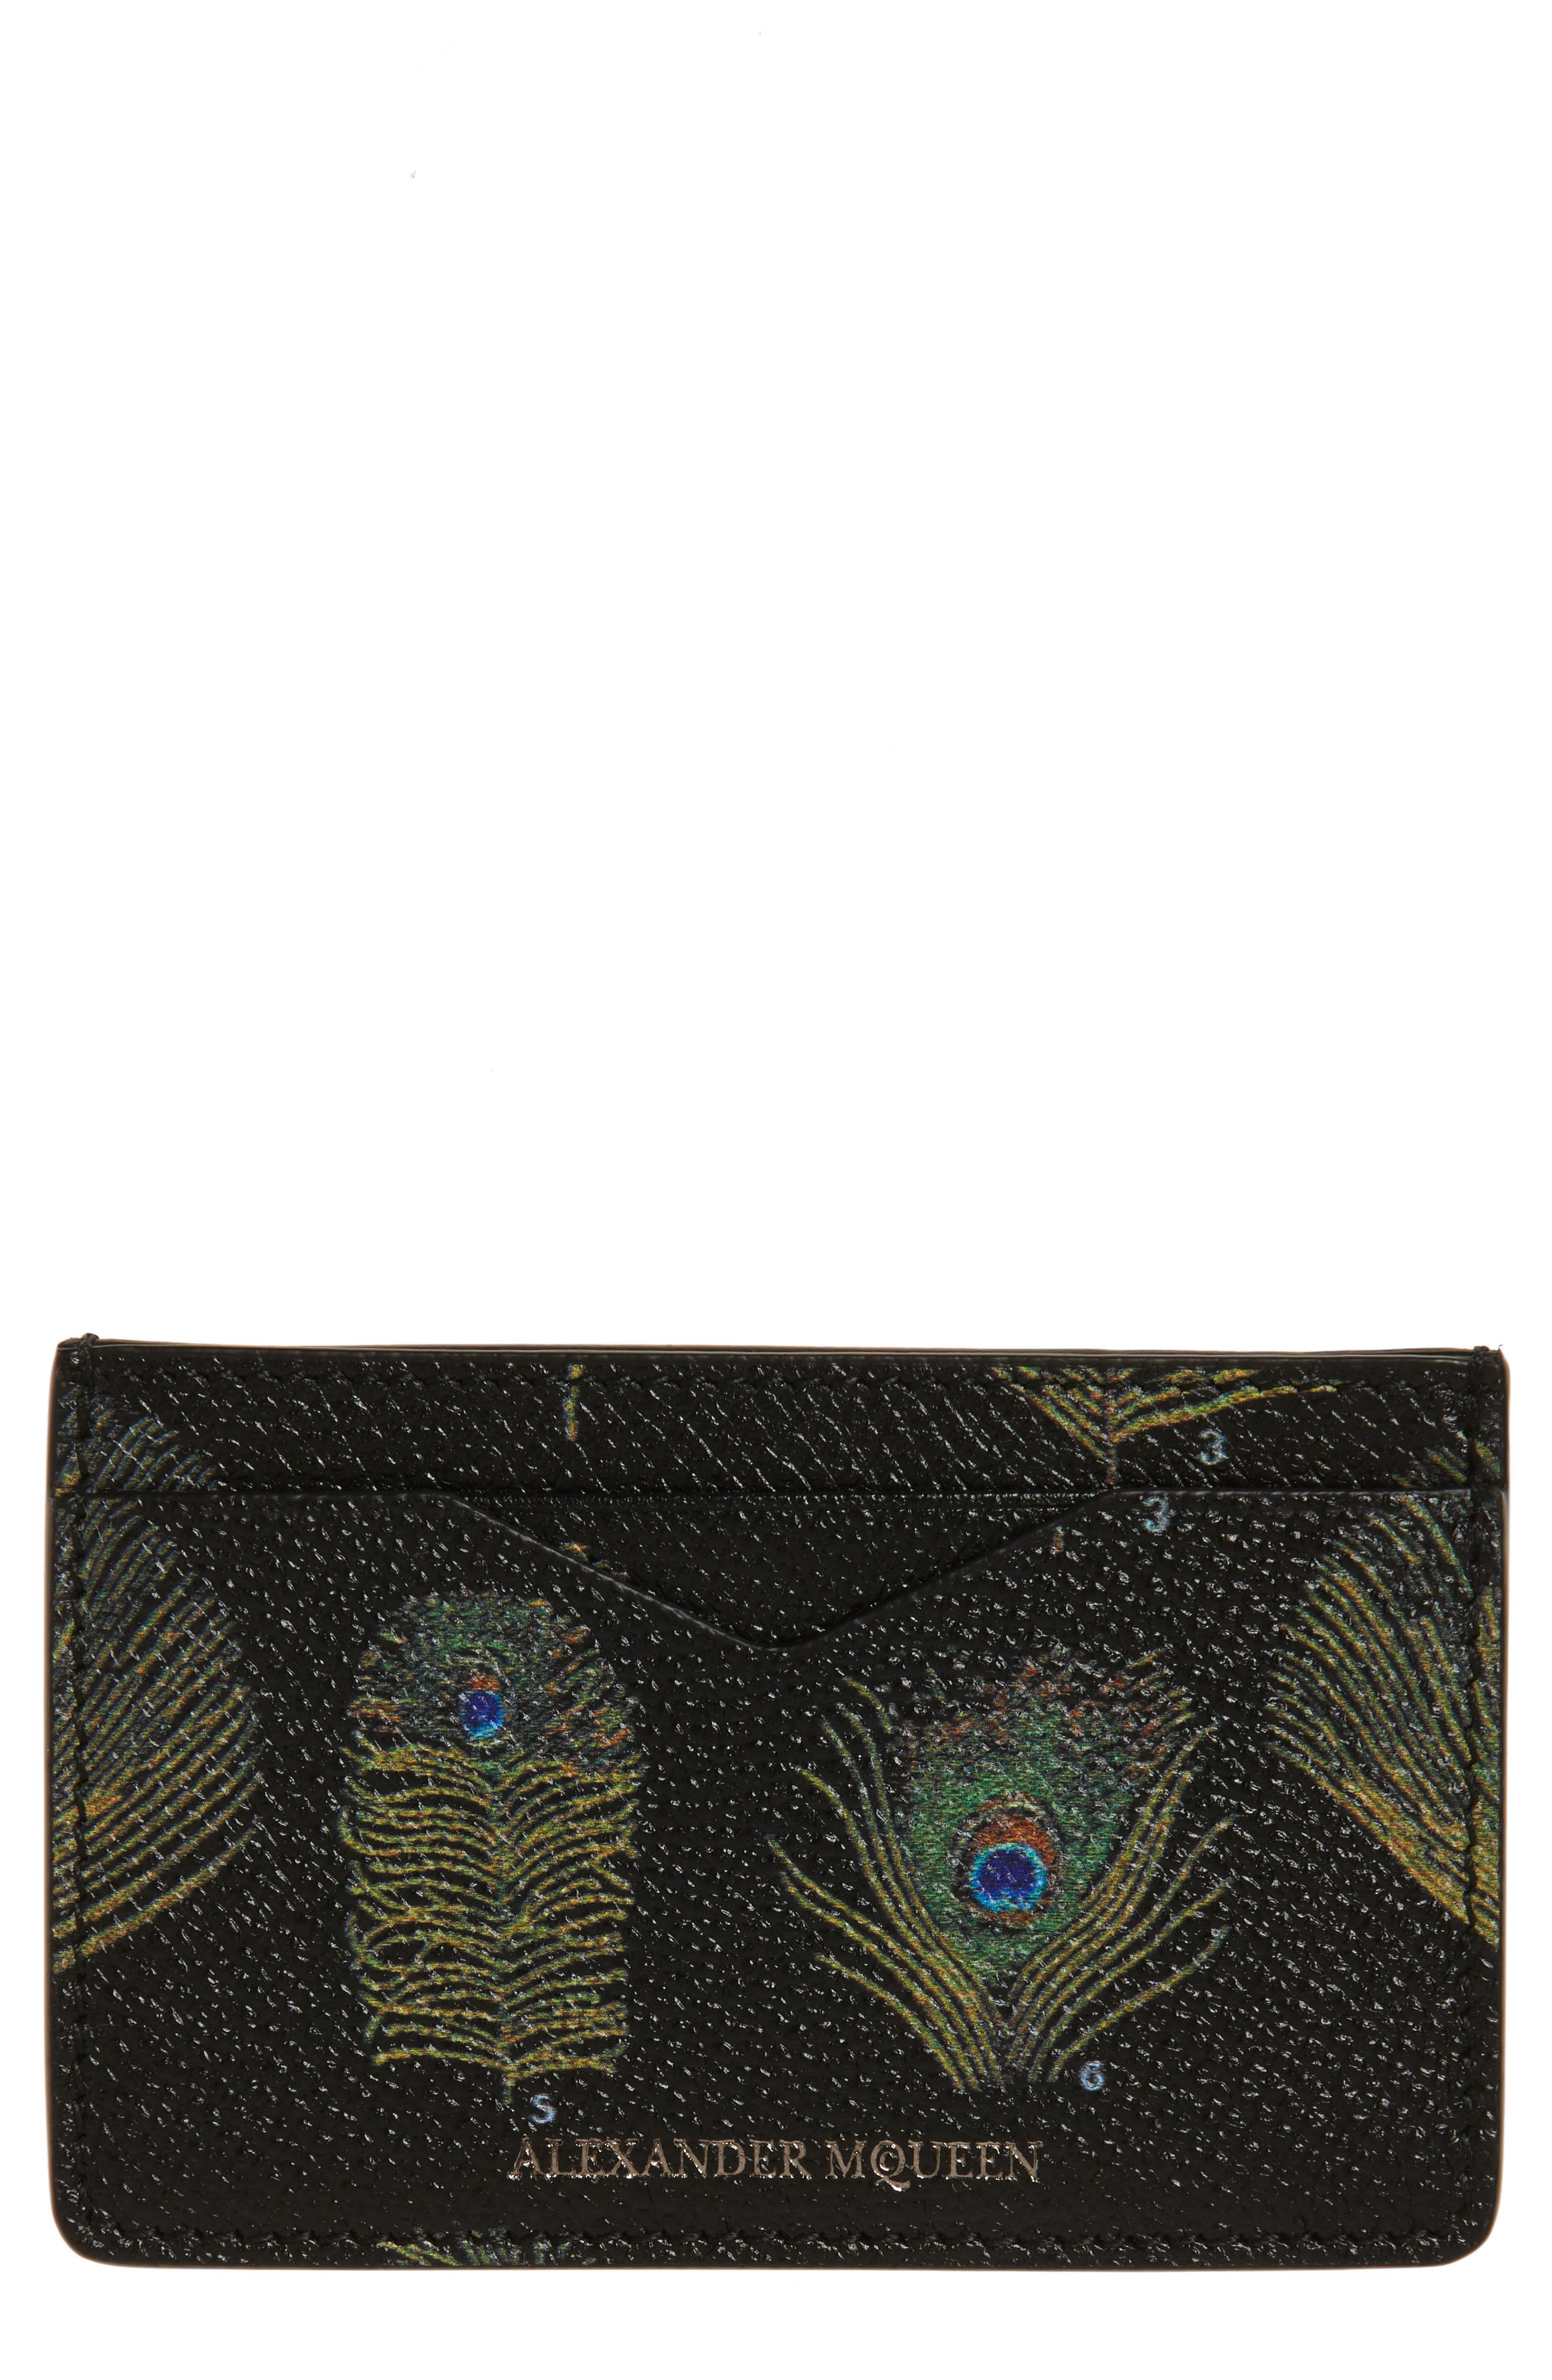 ALEXANDER MCQUEEN Peacock Feather Leather Card Case